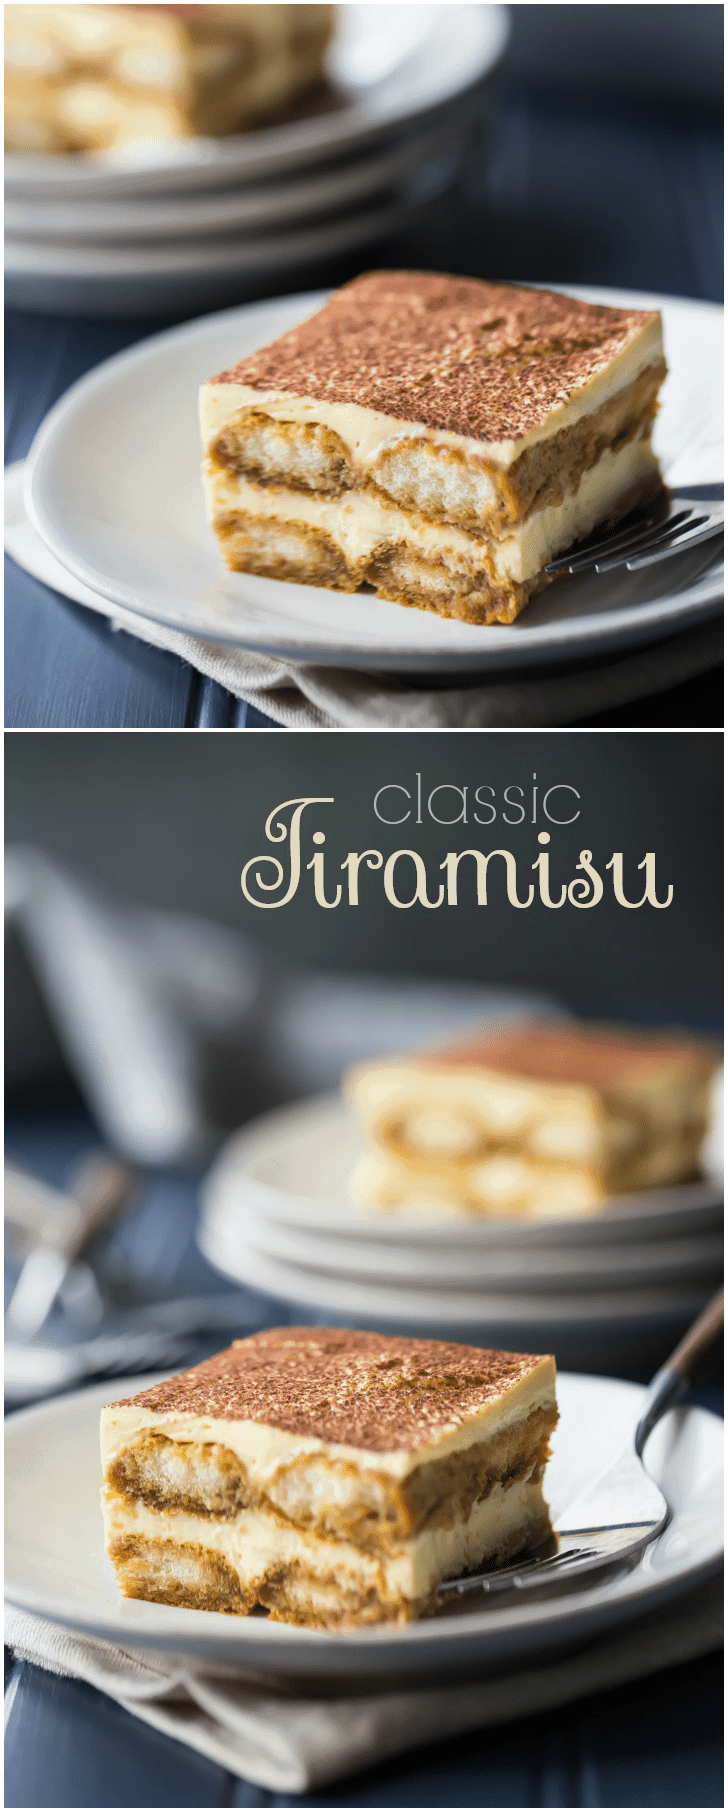 This is my FAVORITE tiramisu recipe!  So airy, light, and rich, with the perfect balance of flavors. I make it all the time and everyone always loves it!  #tiramisu #recipe #easy #authentic #classic #mousse #best #italian #desserts #original #mascarpone